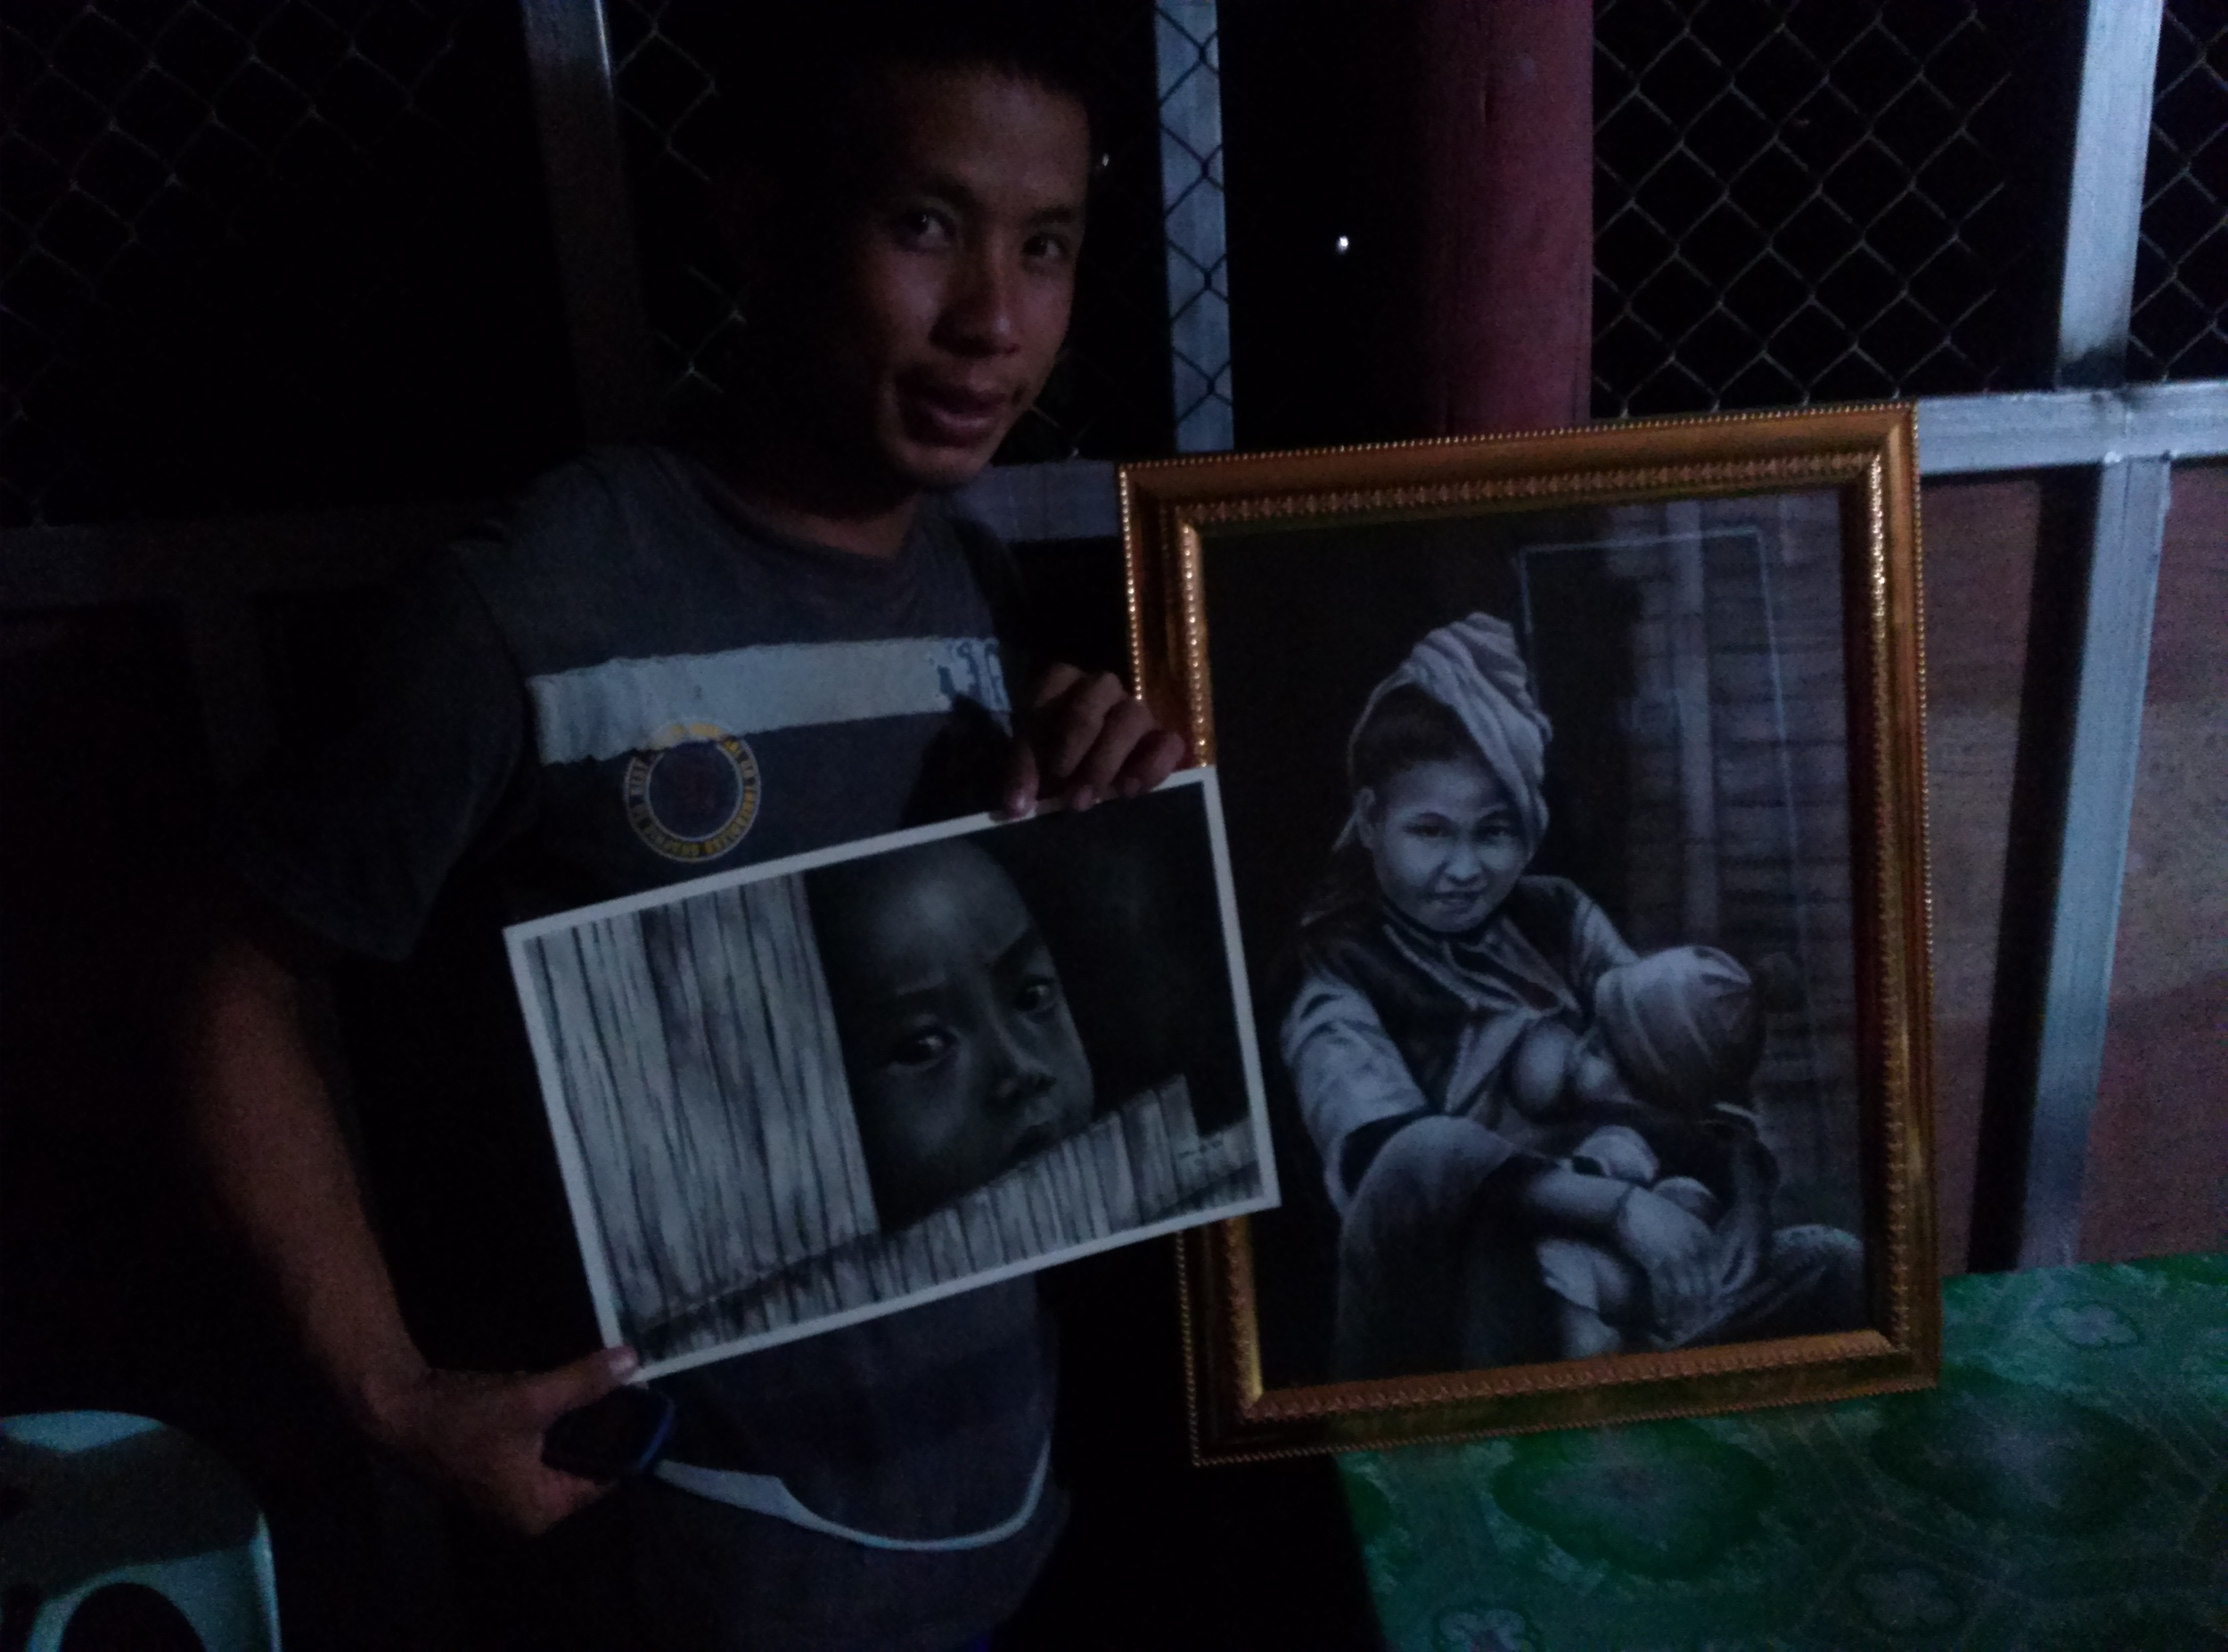 Sew Sew is 22 years old. He likes soccer. He also likes to draw. Here are his two paintings. He has received no professional training. He wants to attend an arts school, develop his skills, and hopefully use the money he sells from his paintings to help his people.